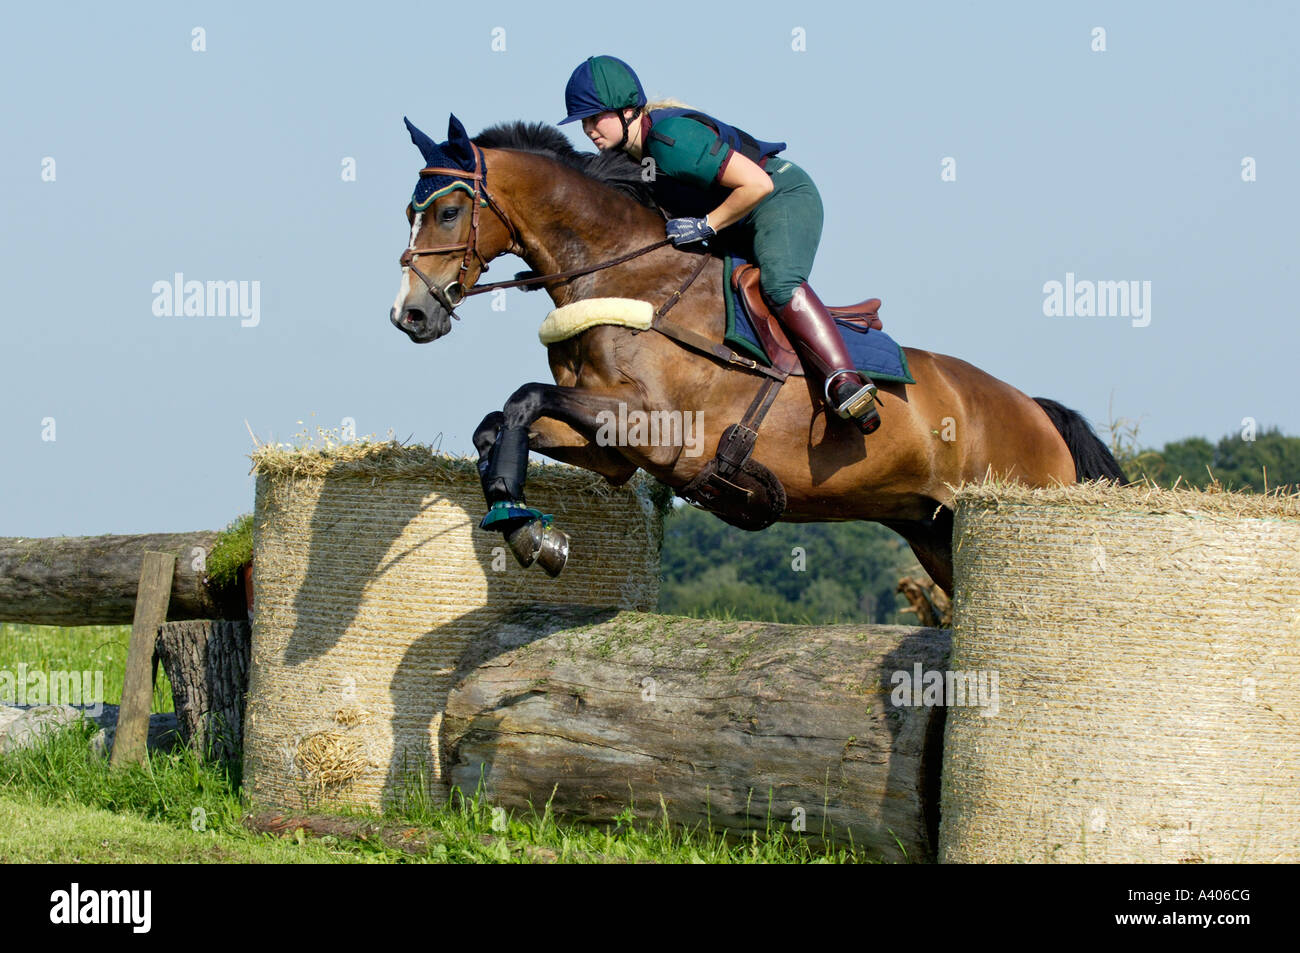 Young lady rider on back of a Bavarian horse jumping - Stock Image